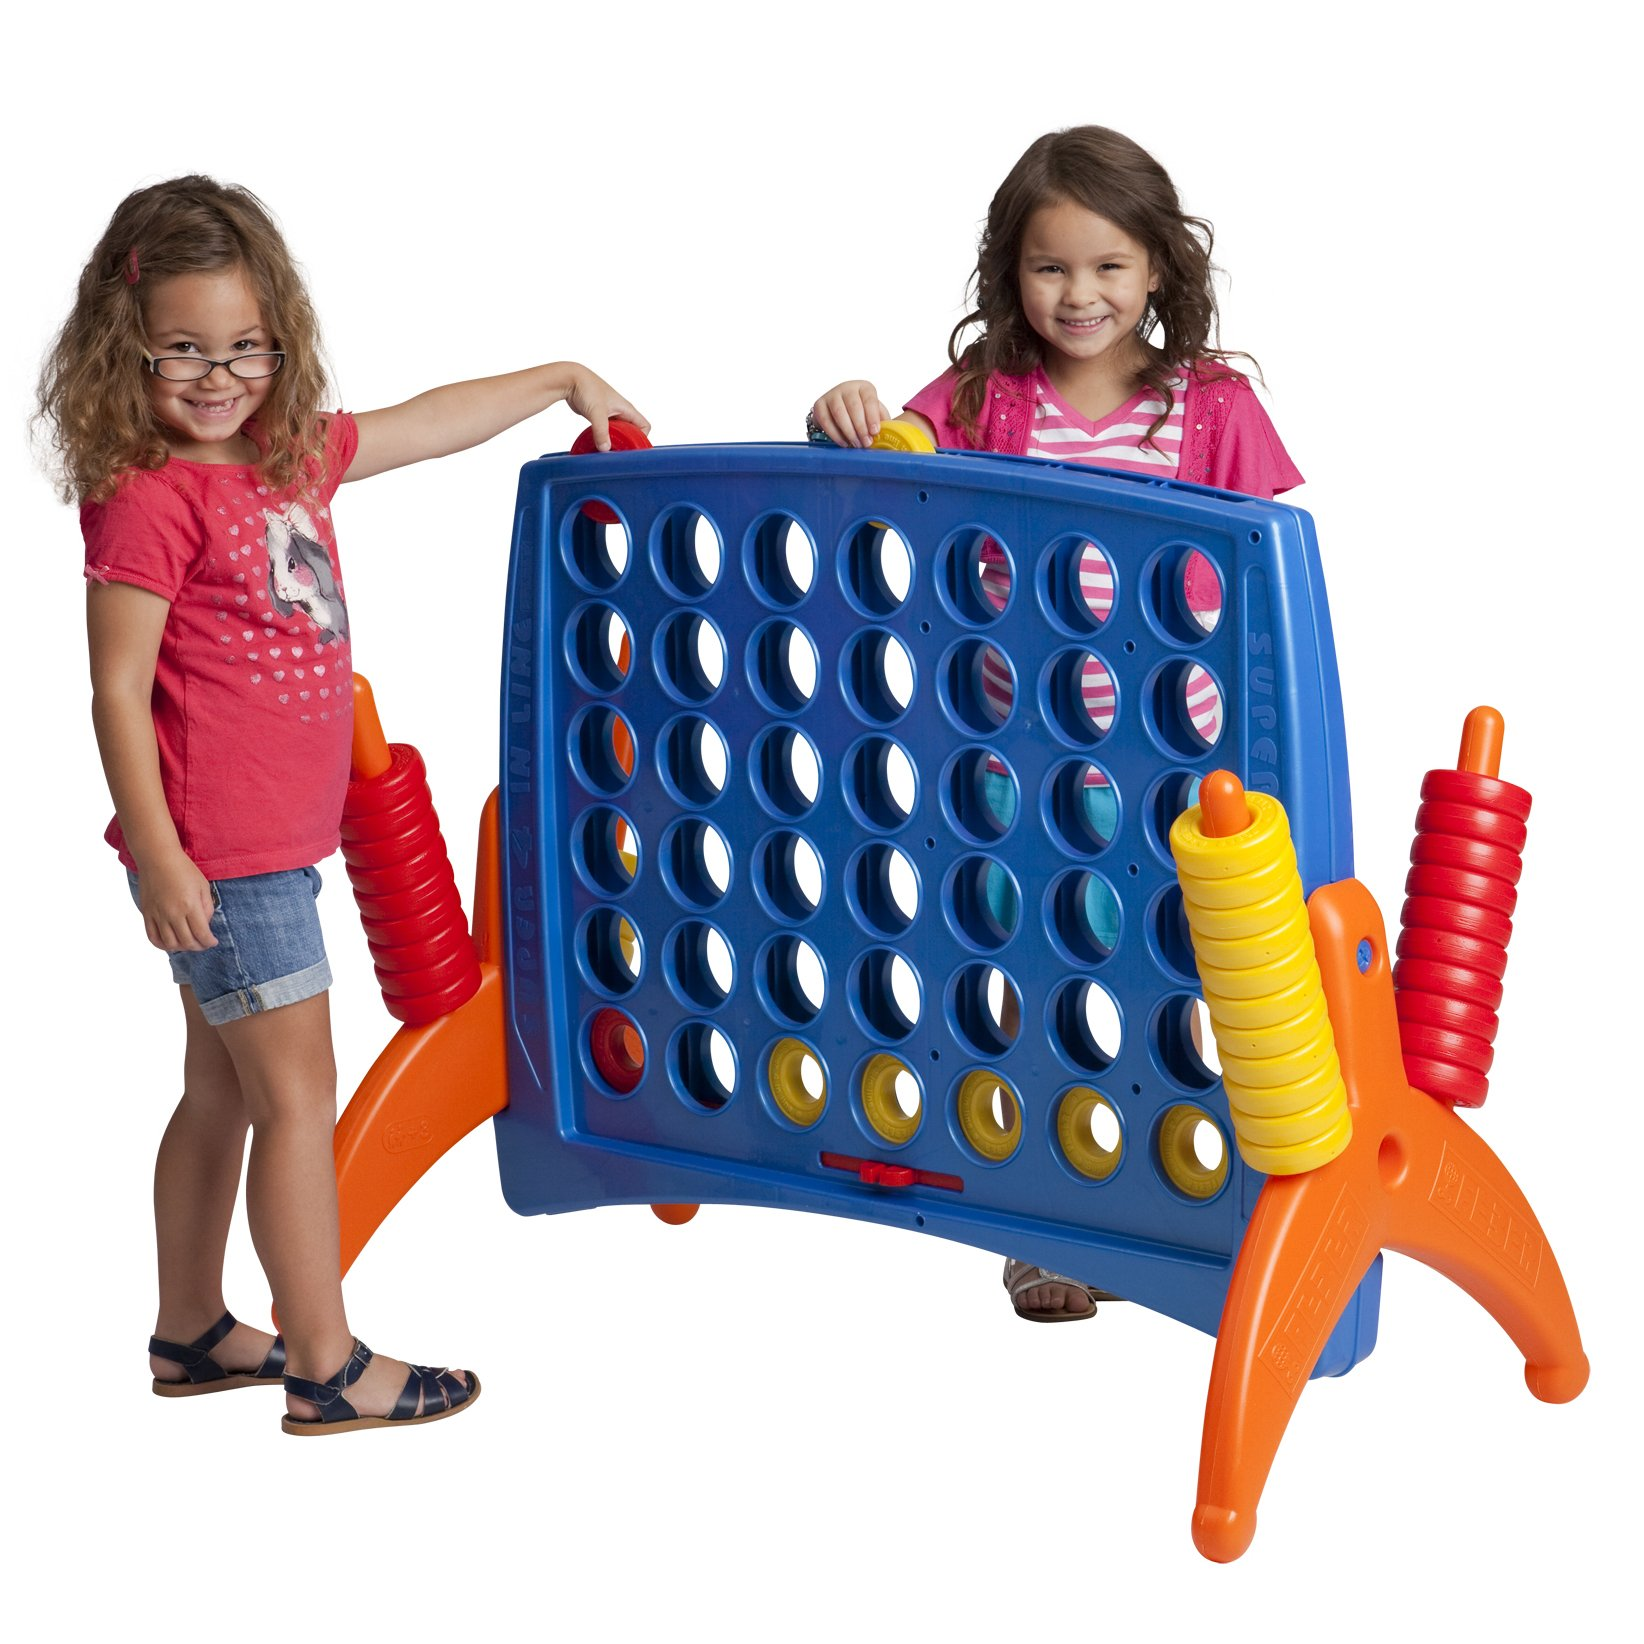 ECR4Kids Junior 4-To-Score Giant Game Set - Oversized 4-In-A-Row Fun for Kids, Adults and Families - Indoors/Outdoor Play Structure - Almost 3 Feet Tall, Primary Colors